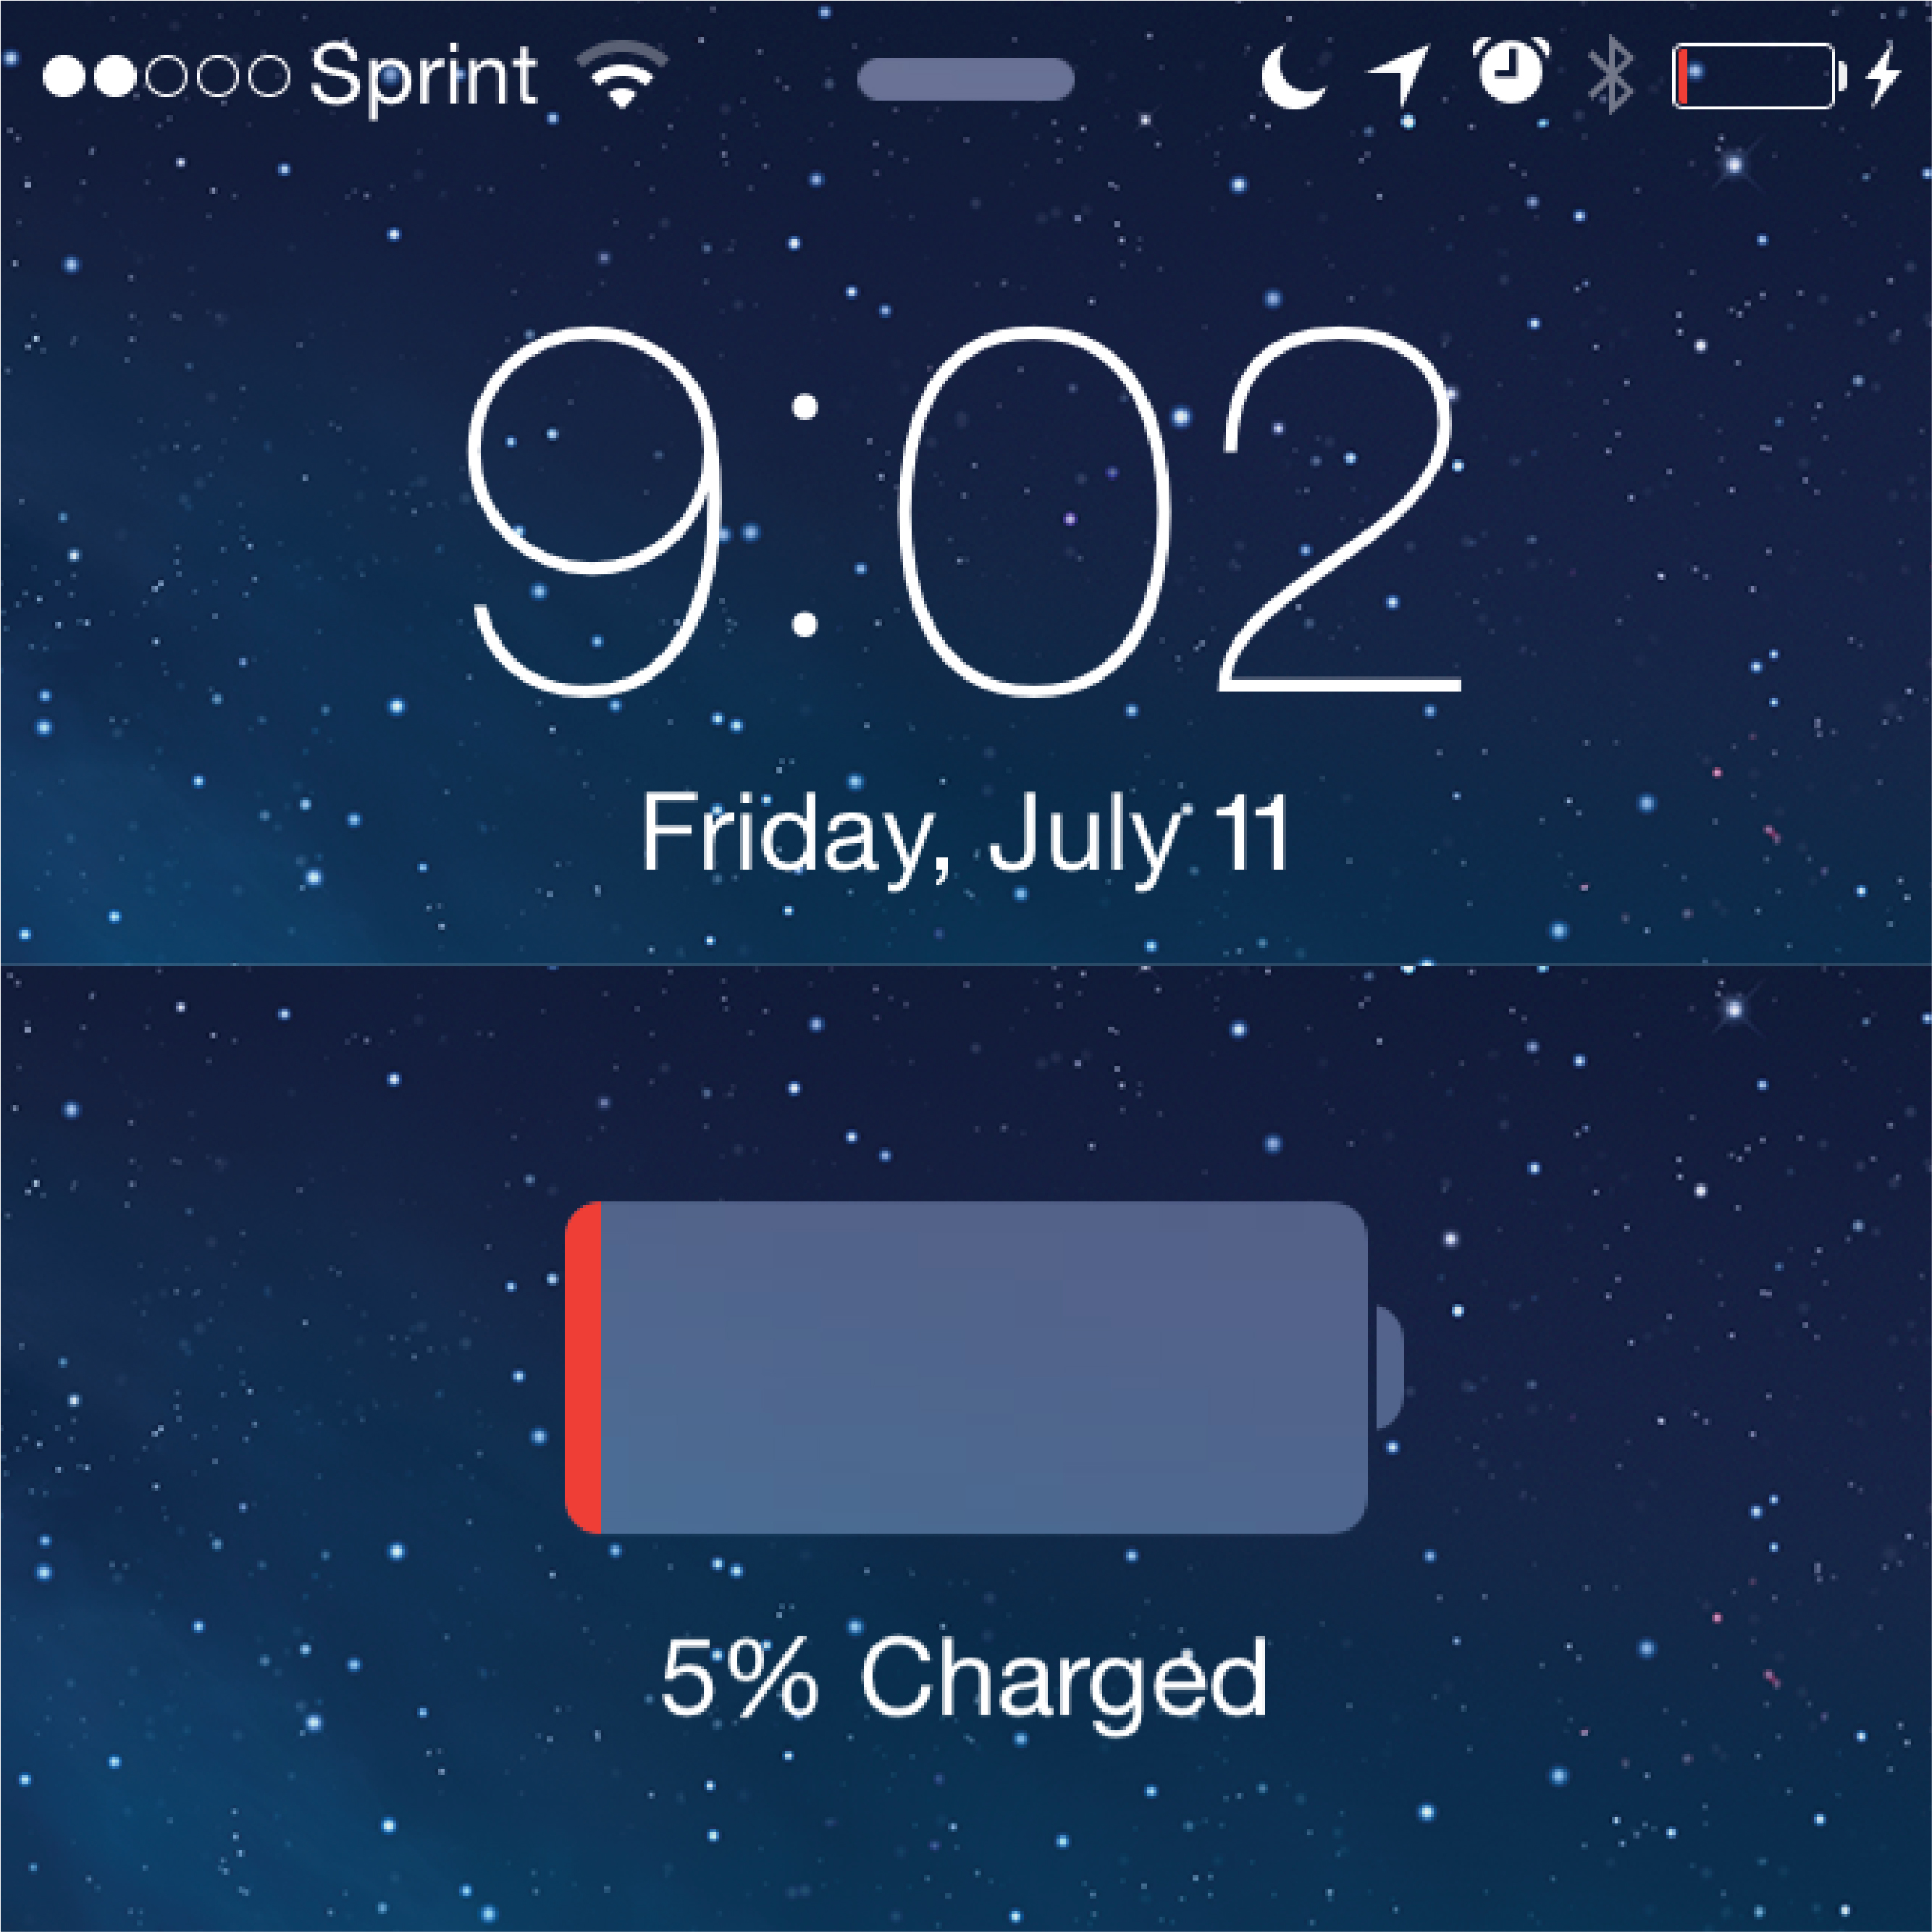 Screenshot of an iPhone showing 9:02, Friday, July 11. A night sky in the background image. The phone shows as plugged in and currently at 5% power.